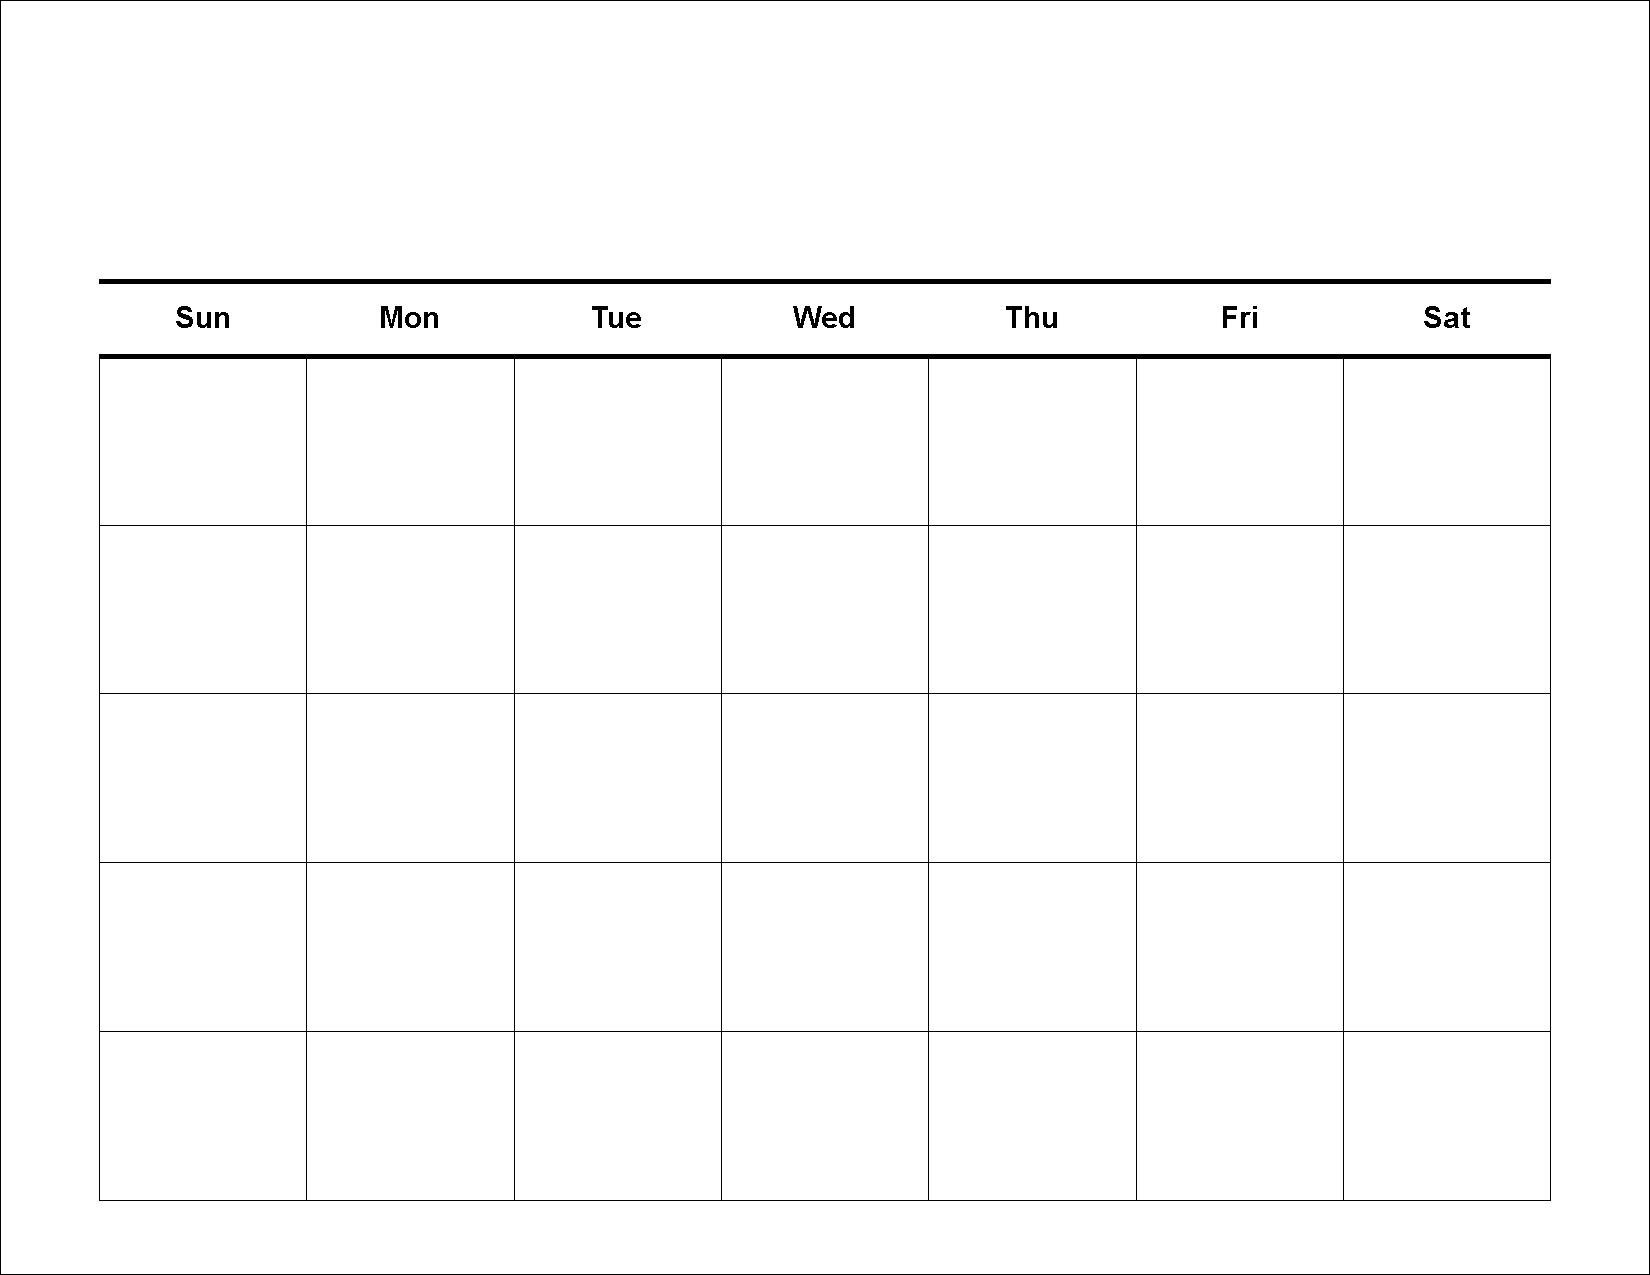 Blank Calendar Template Printable At Fill In Calendar Template intended for Blank Calendar To Fill In